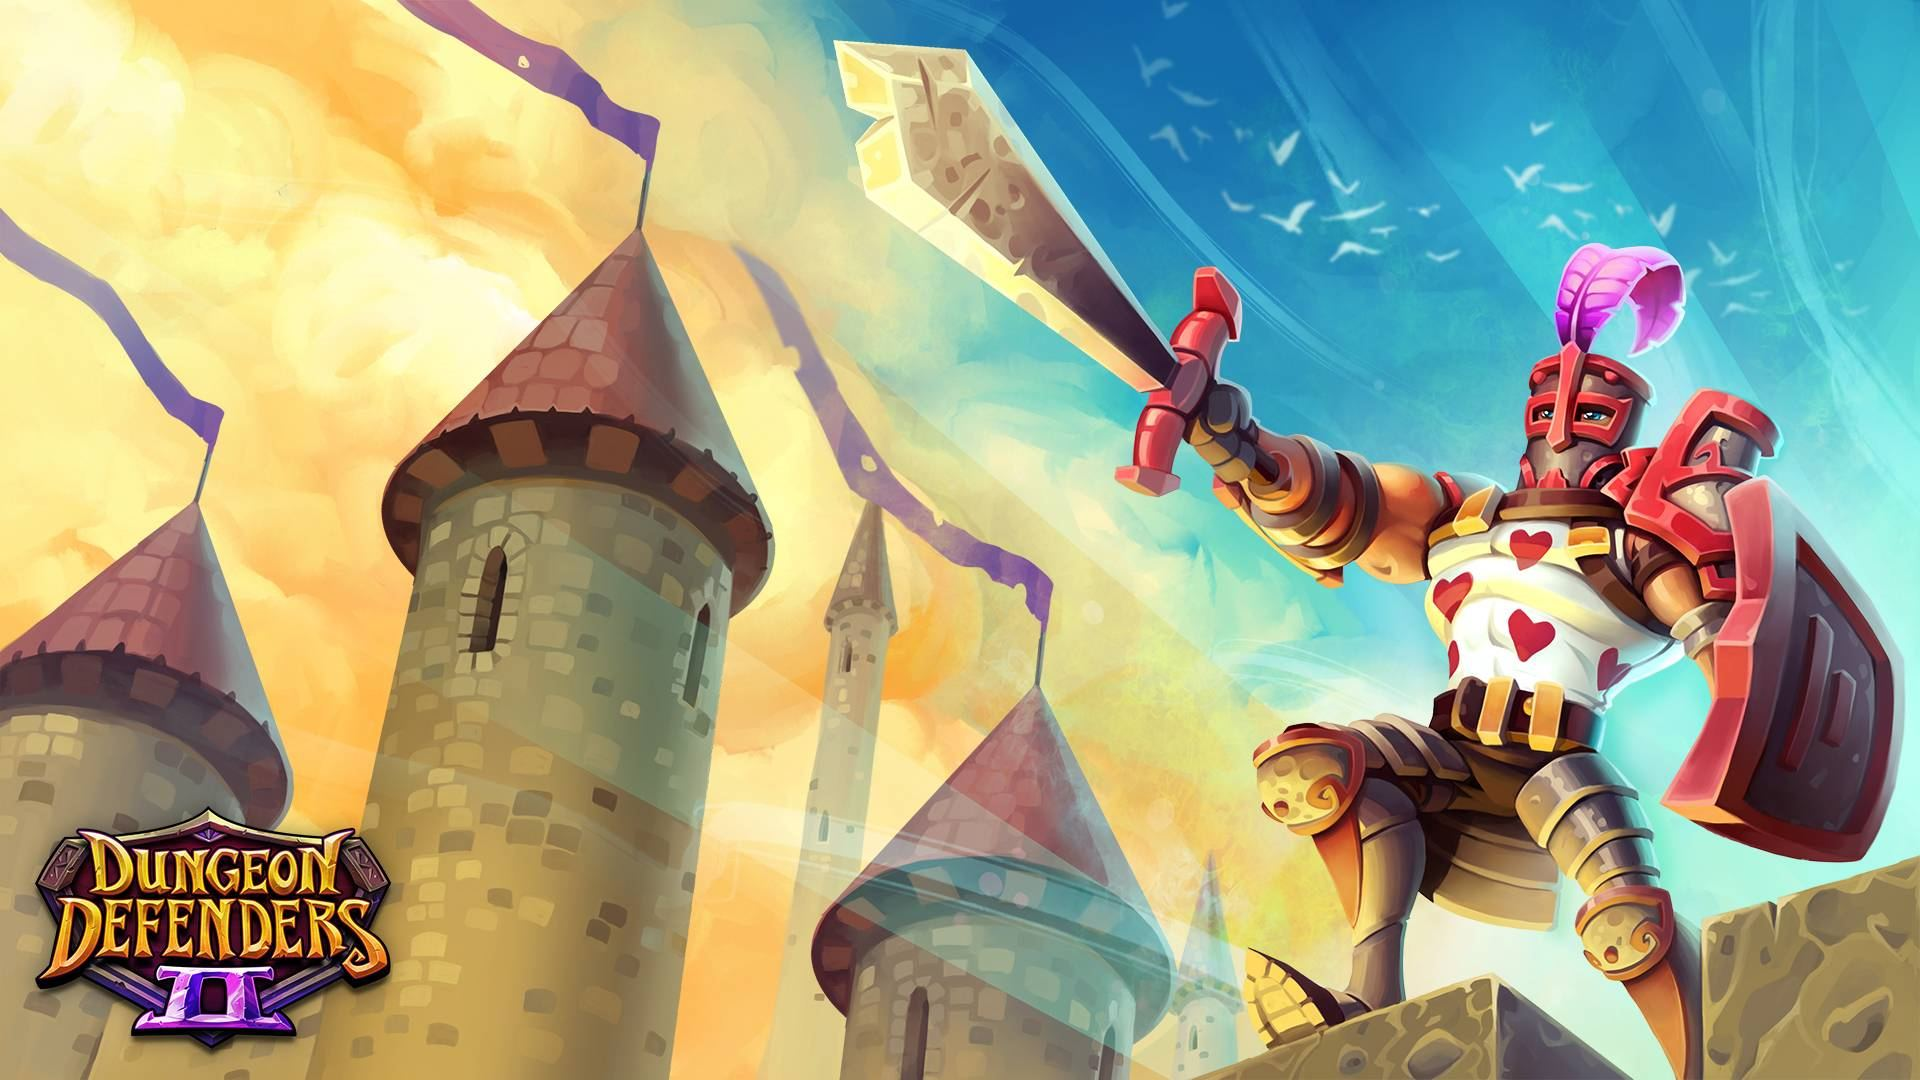 Dungeon Defenders 2 Wallpaper in The Meantime Here's Some